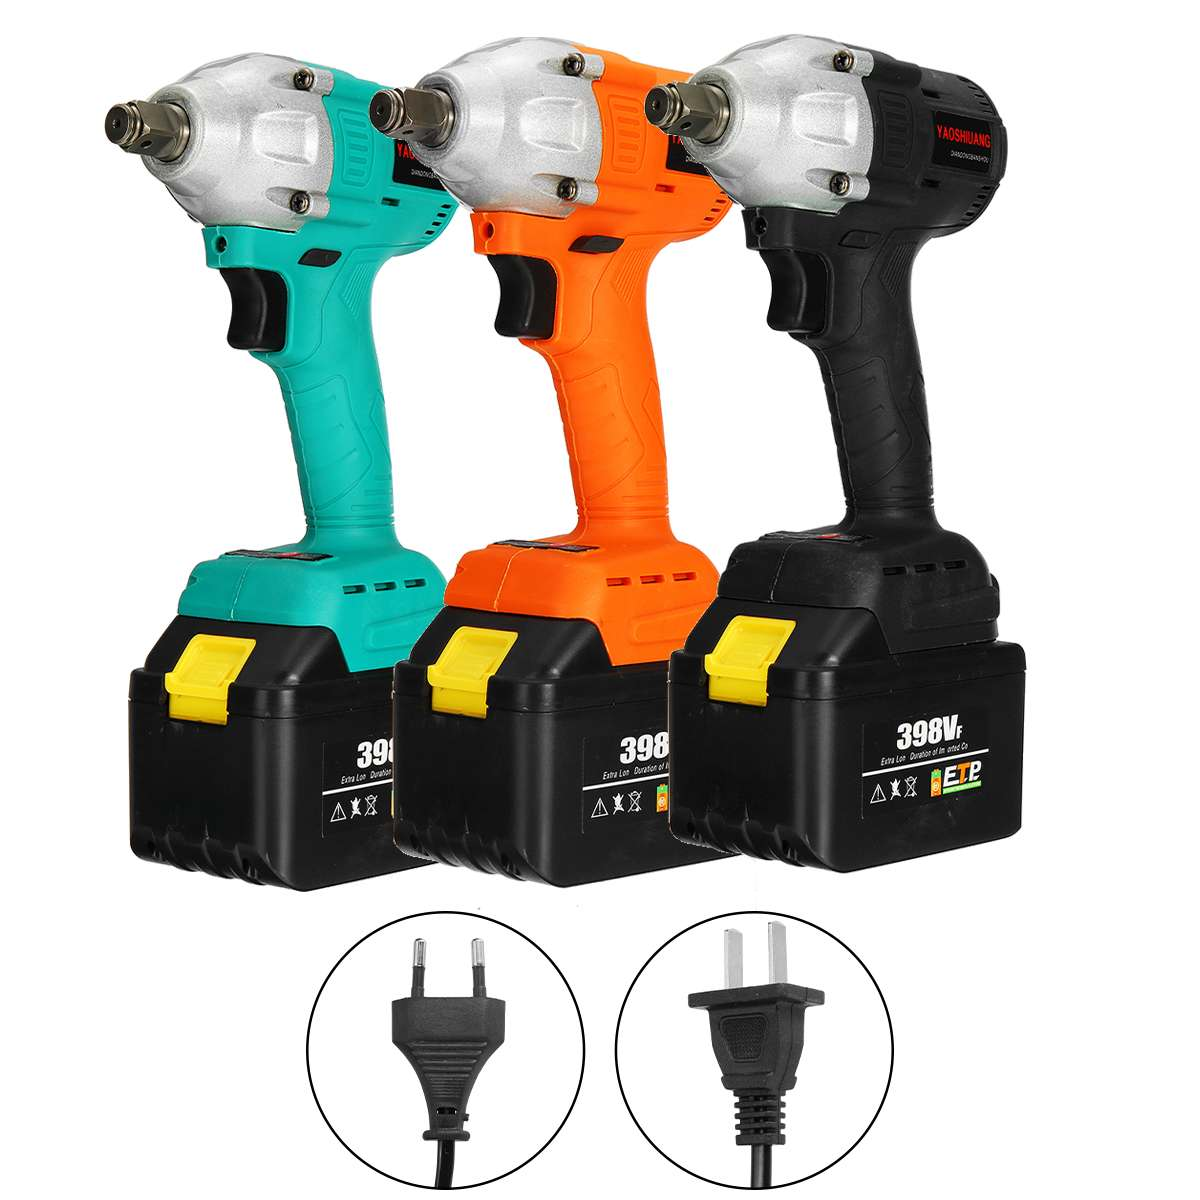 YAOSHUANG 750W 680NM Brushless Cordless Impact Wrench 39800mAh Electric Impact Wrench Battery Wrench Power Motor With Sleeves